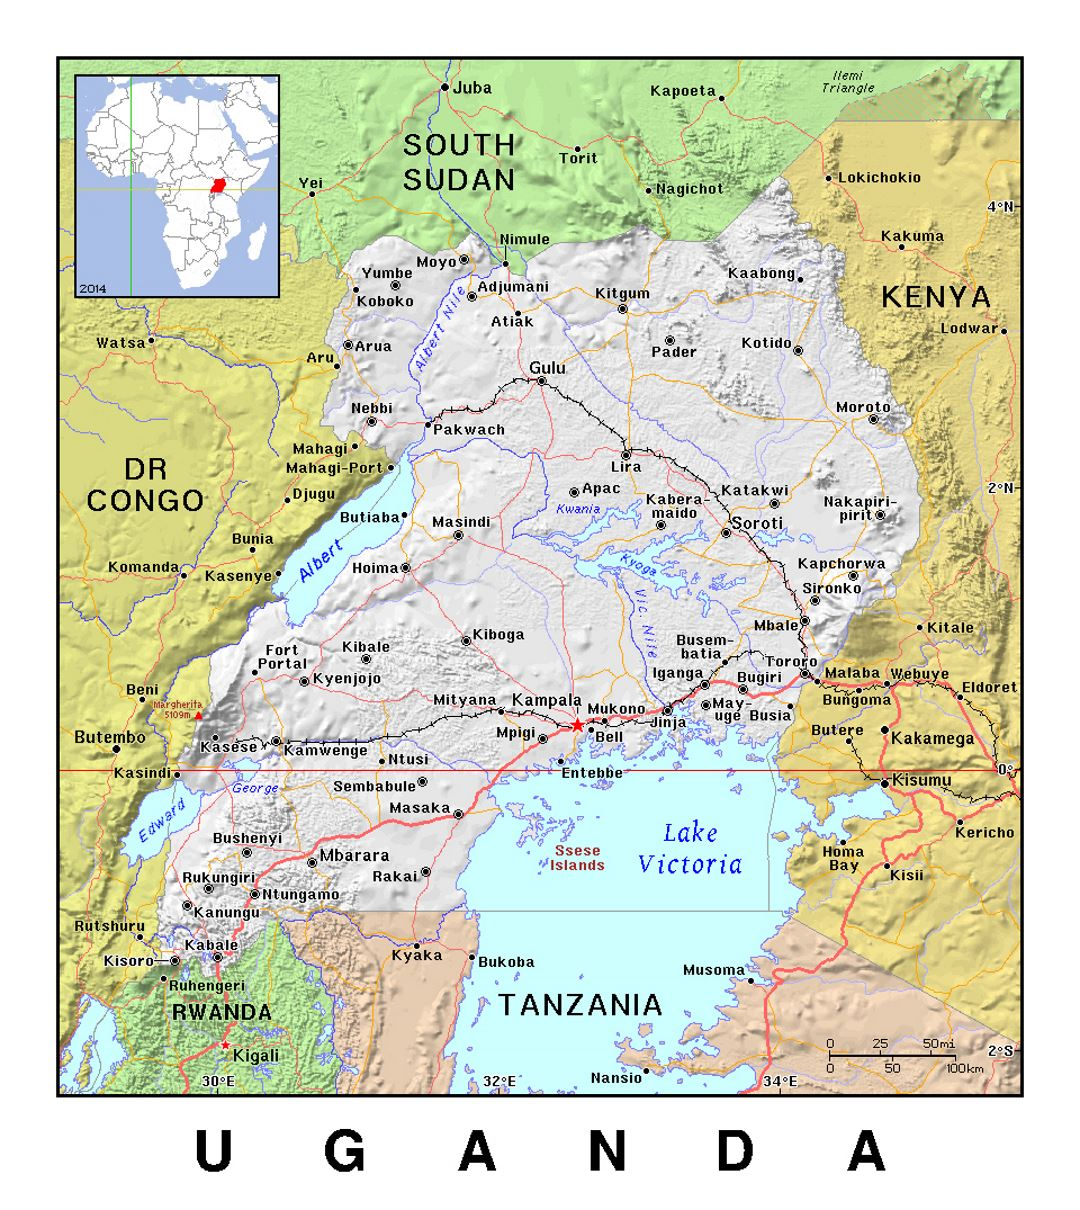 Detailed political map of Uganda with relief